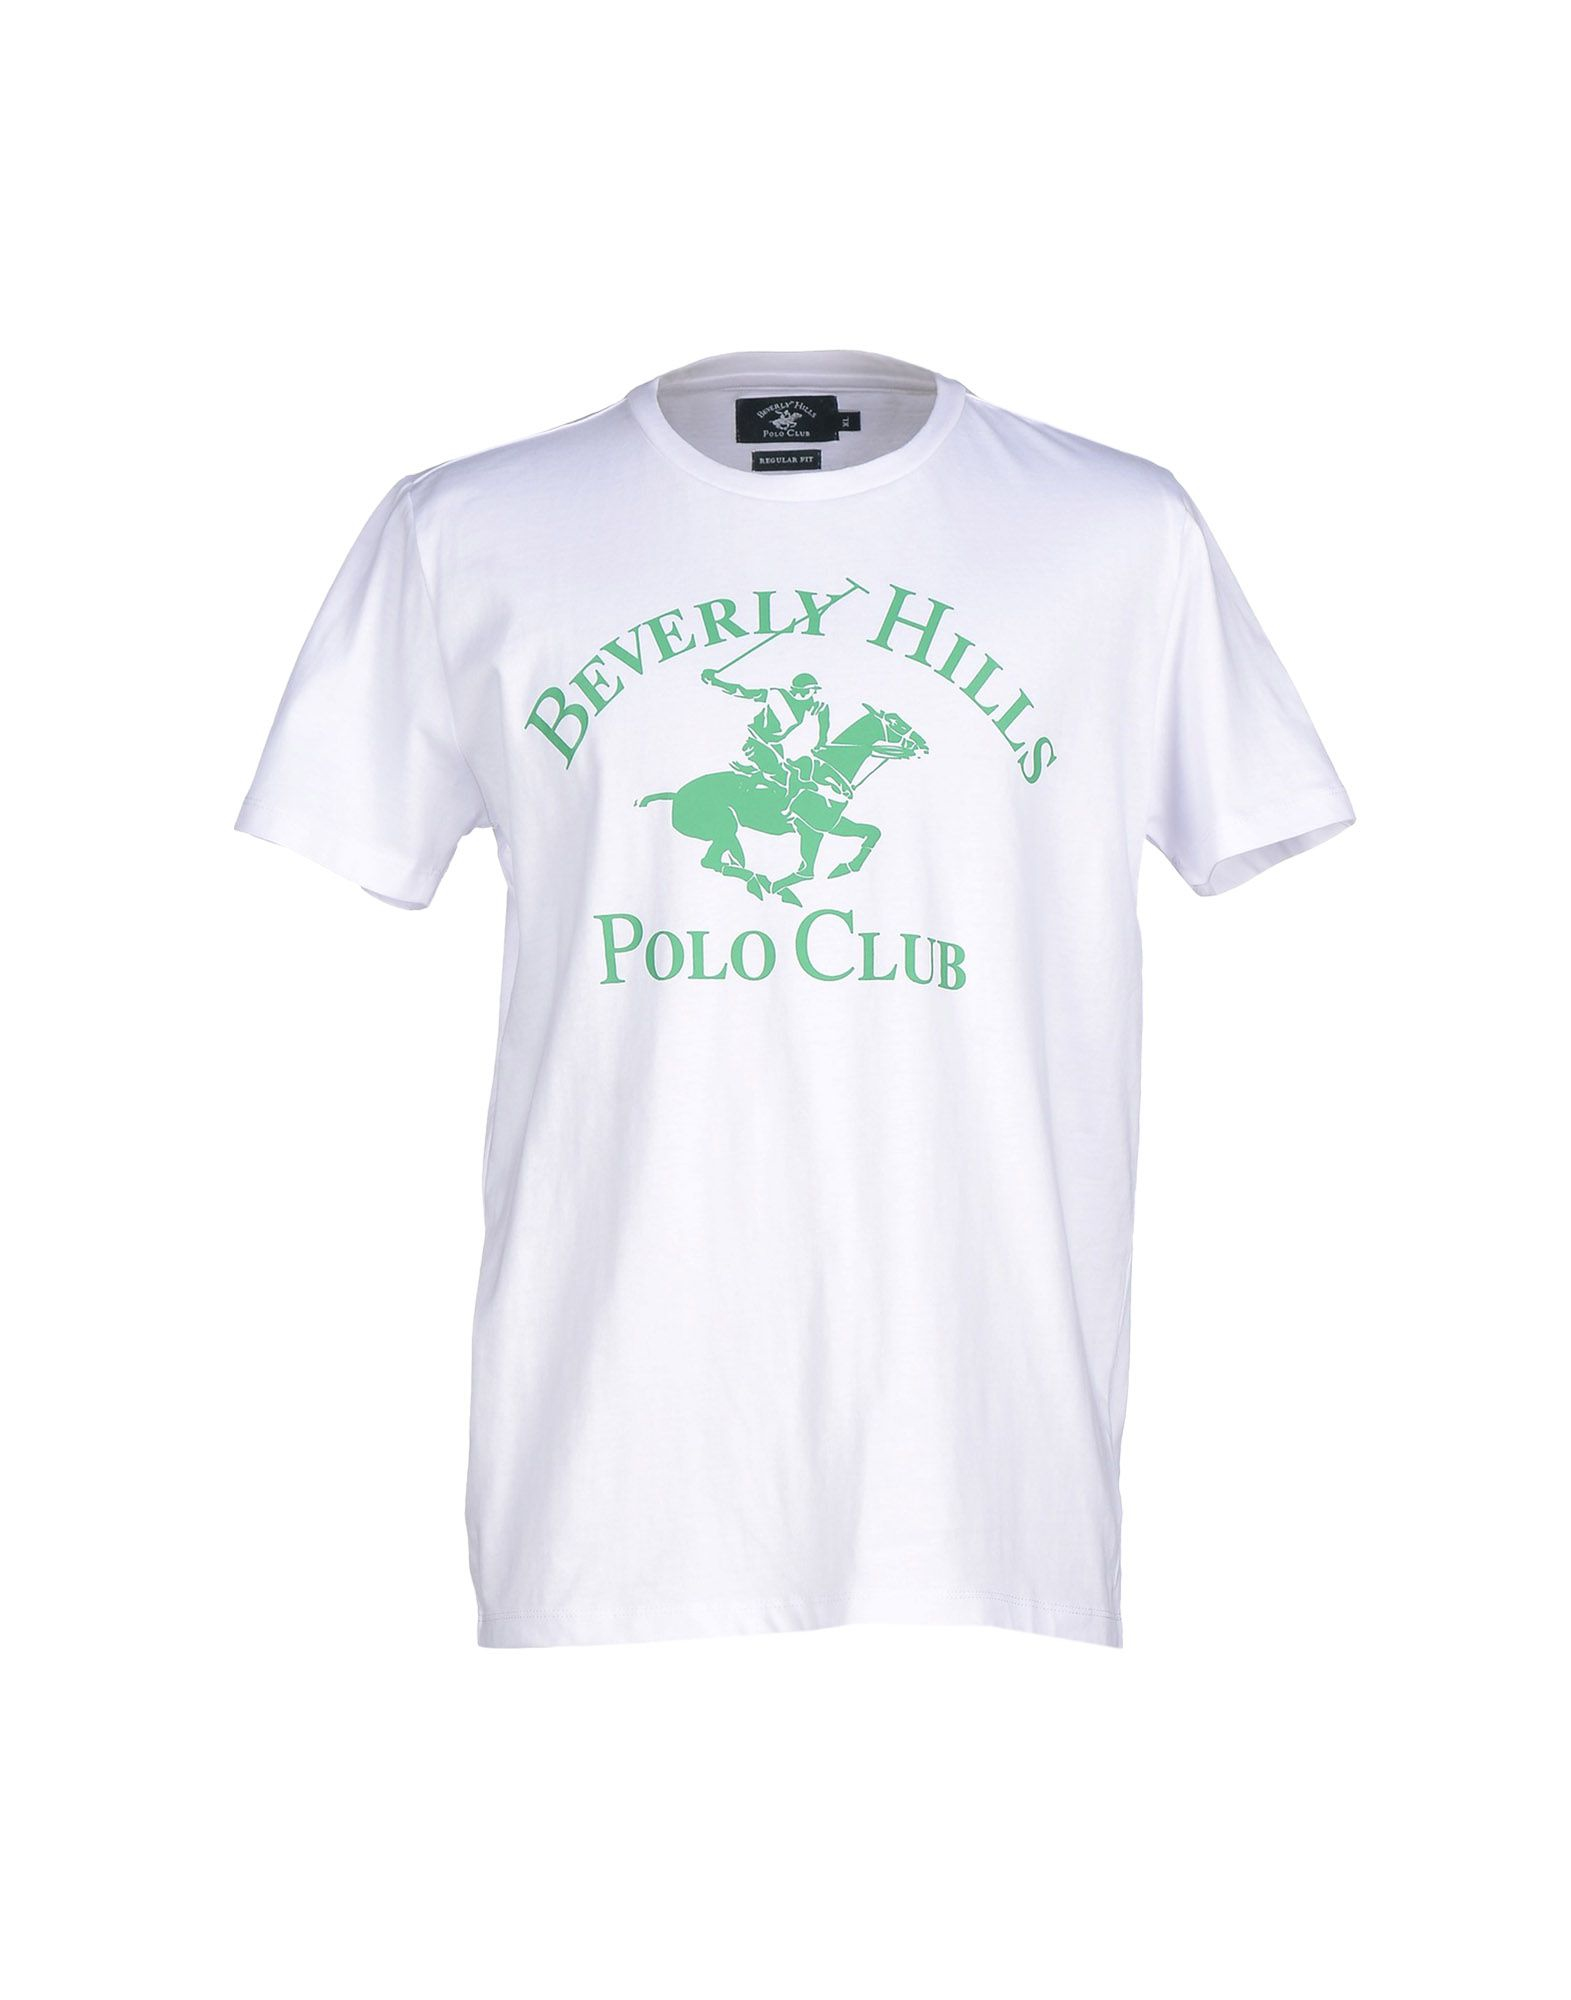 Beverly hills polo club t shirt in white for men lyst for T shirts for clubs